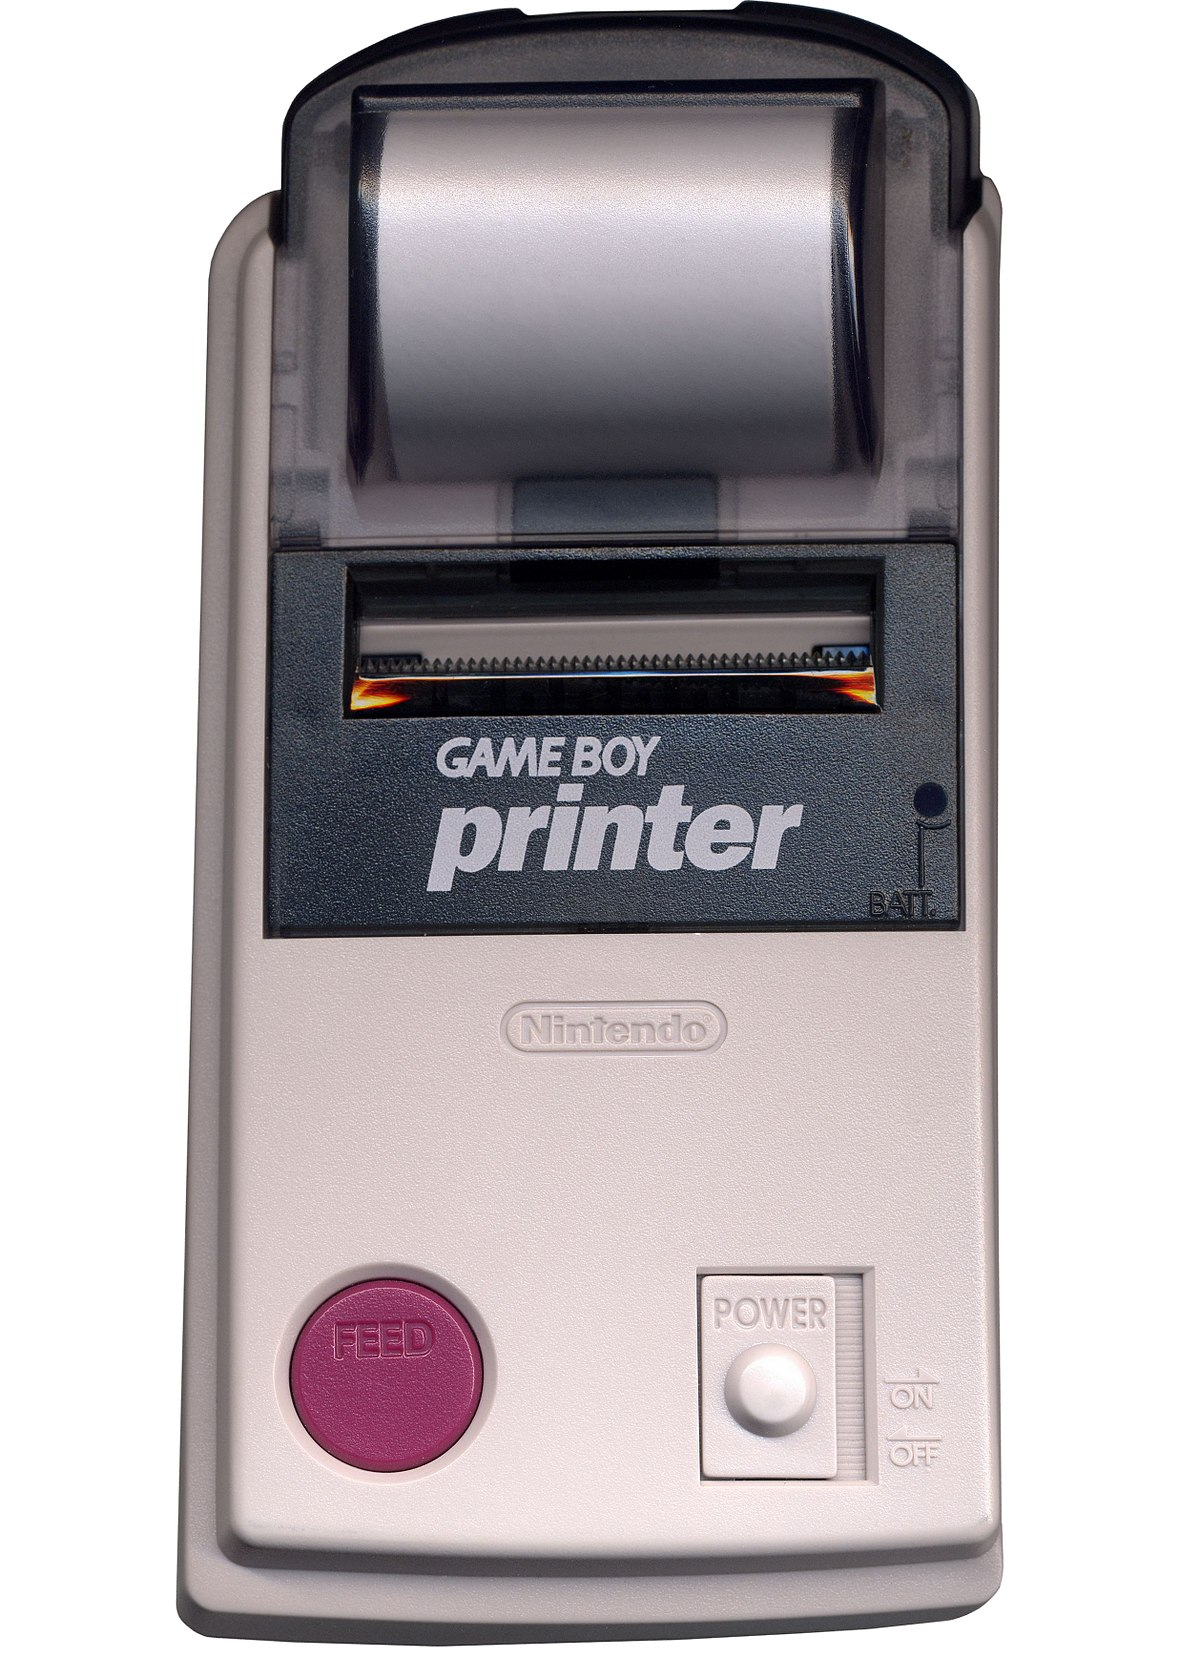 Game Boy Printer Wikipedia Bigger Are Circuit For Series 220v Life 3ds To